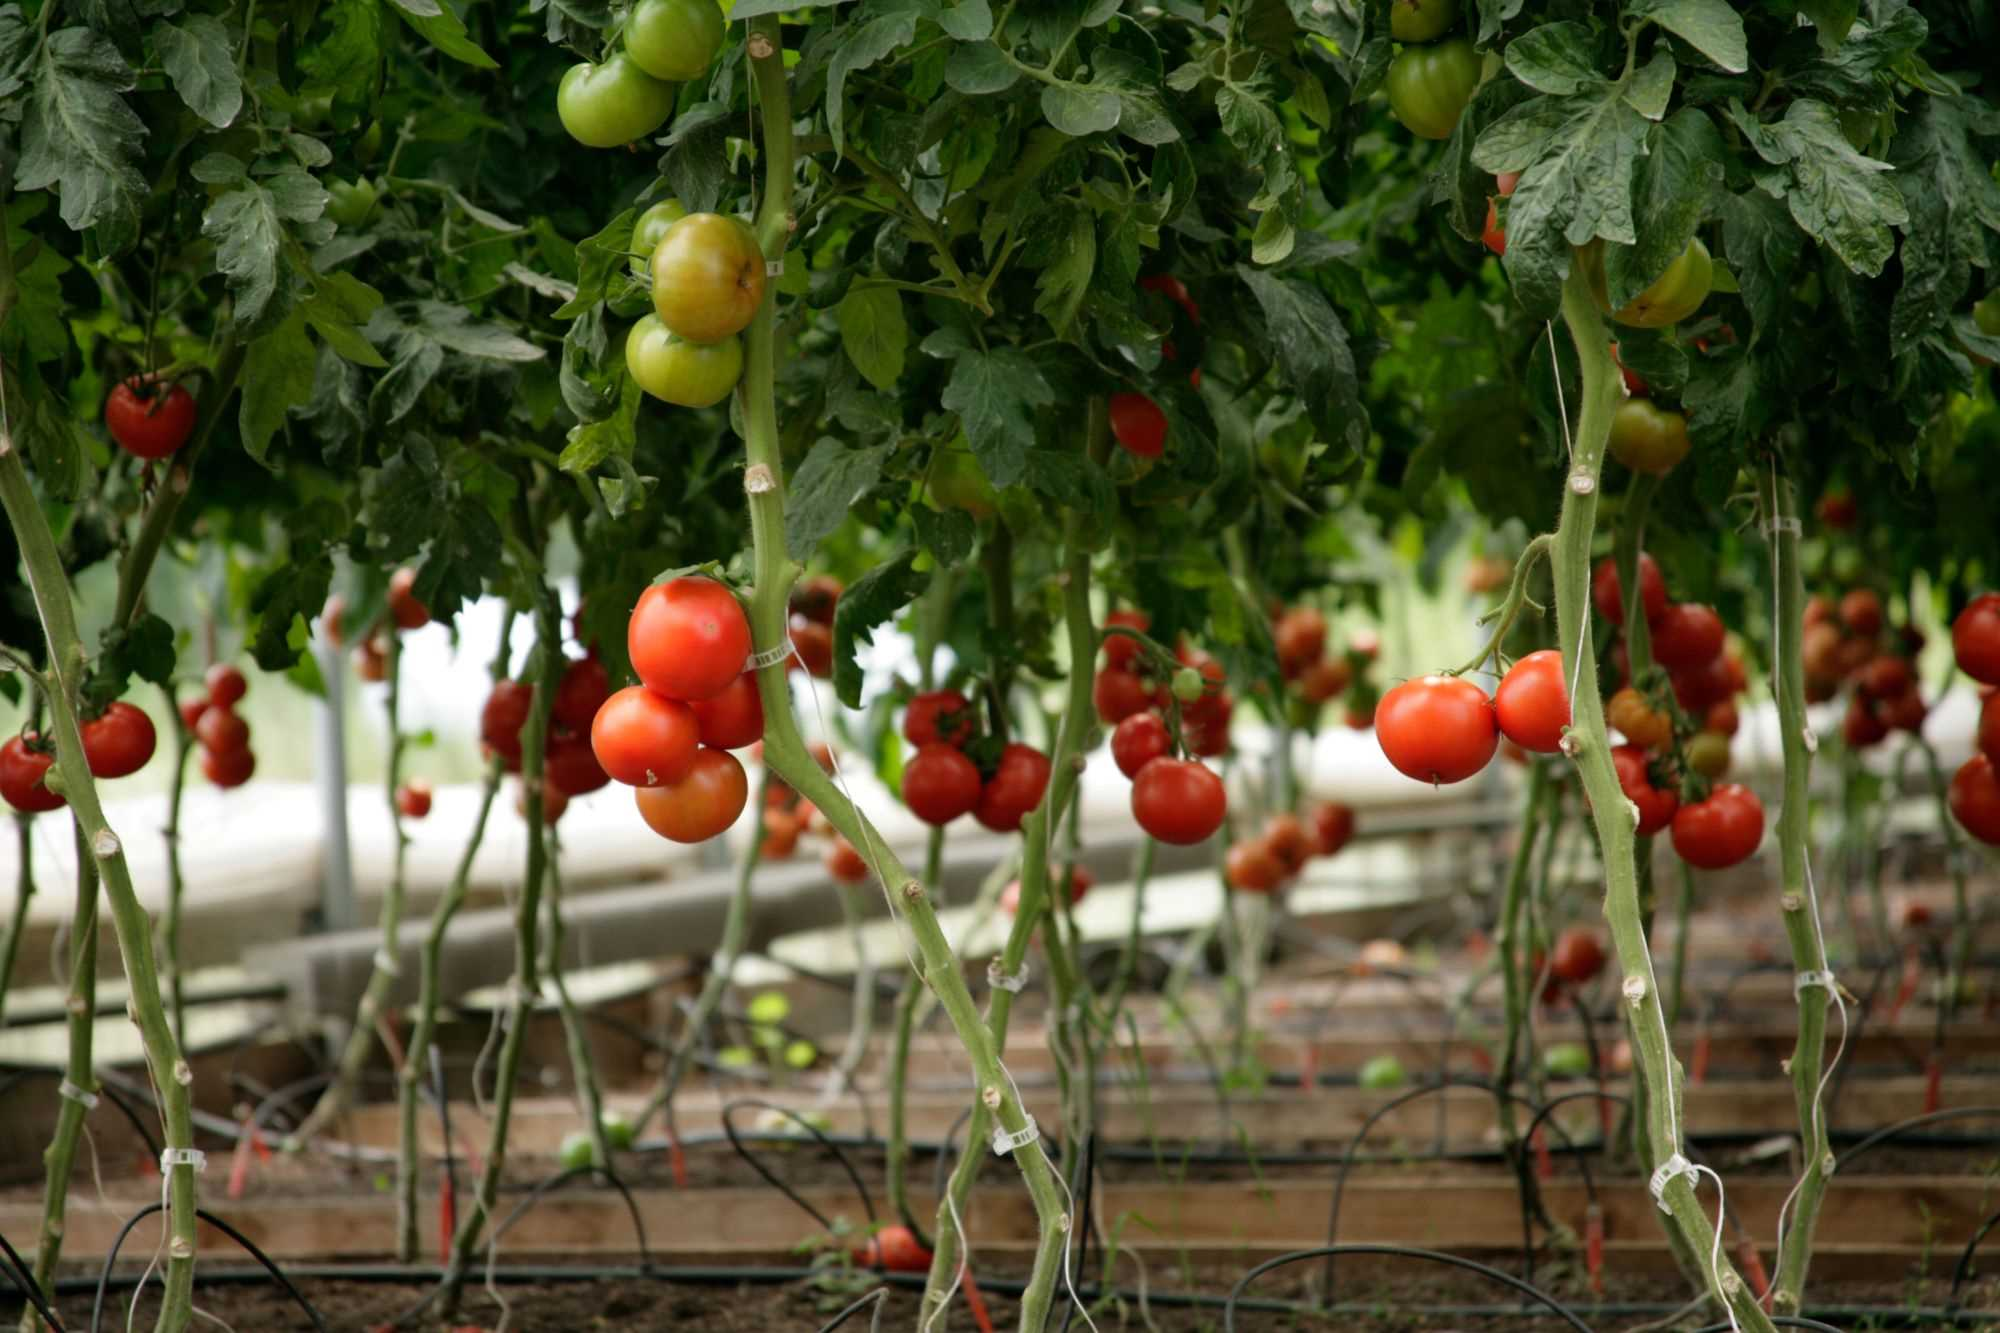 McEnroe Organic Tomatoes Are Available from April to December